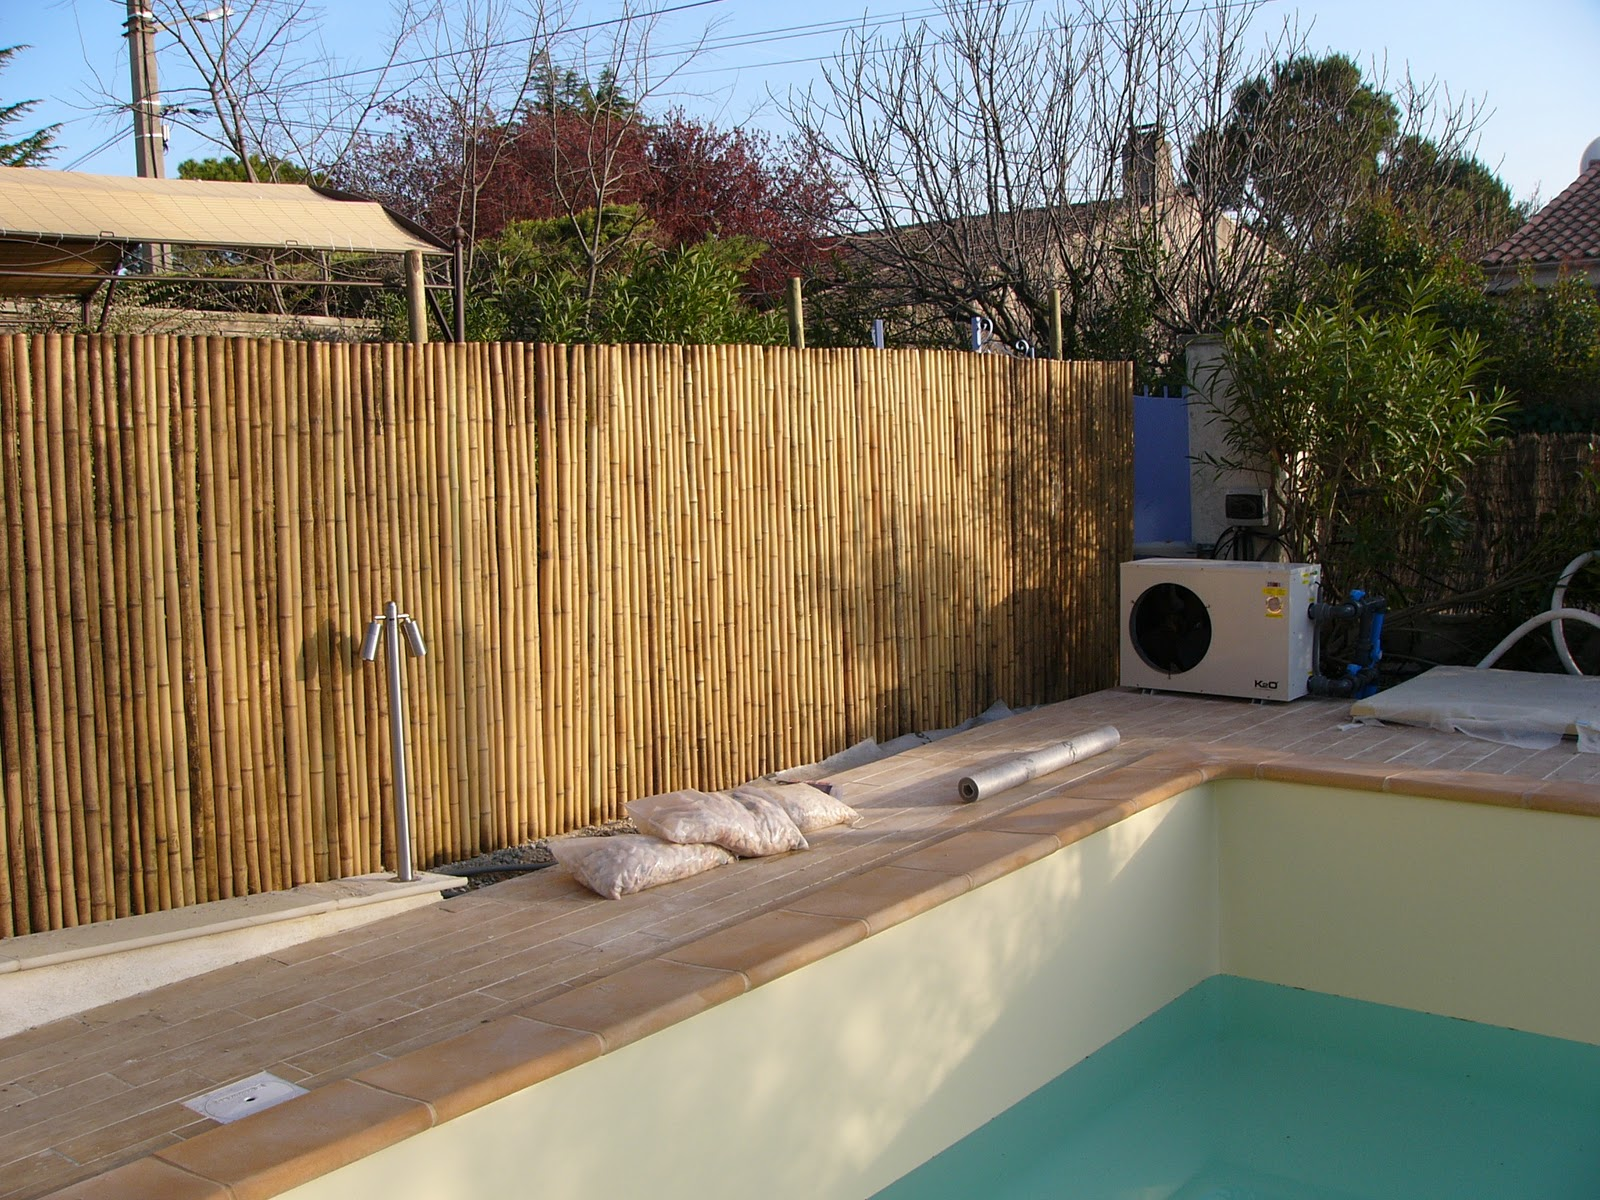 D co cout construction piscine beton angers 32 angers cout junkremova - Piscine cout construction ...